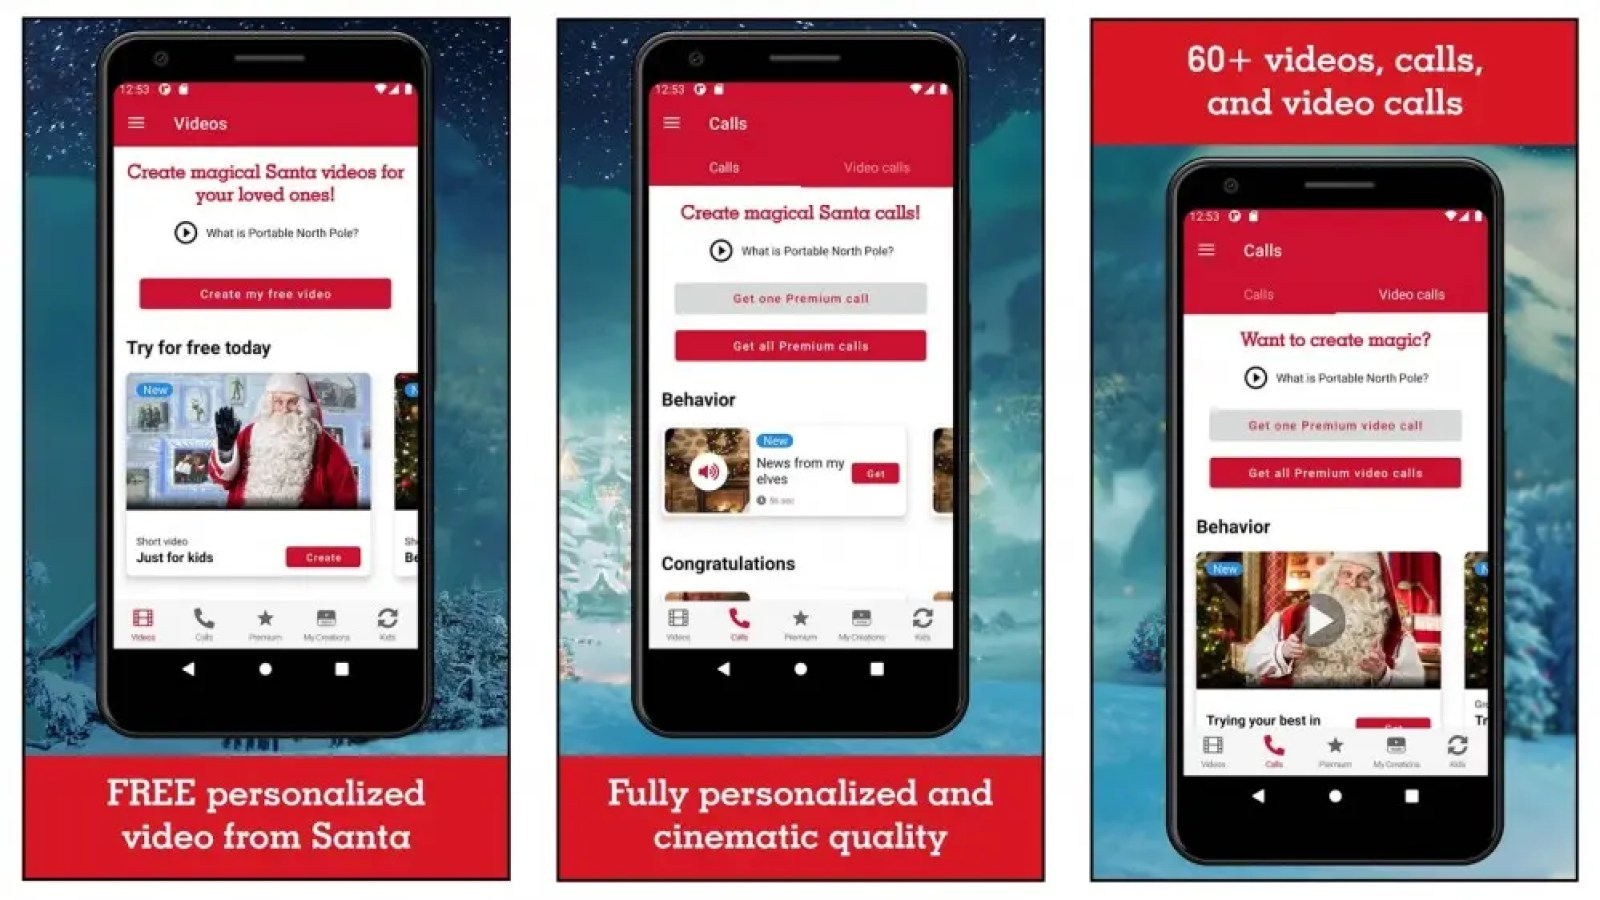 Portable North Pole app with video, call, and other options